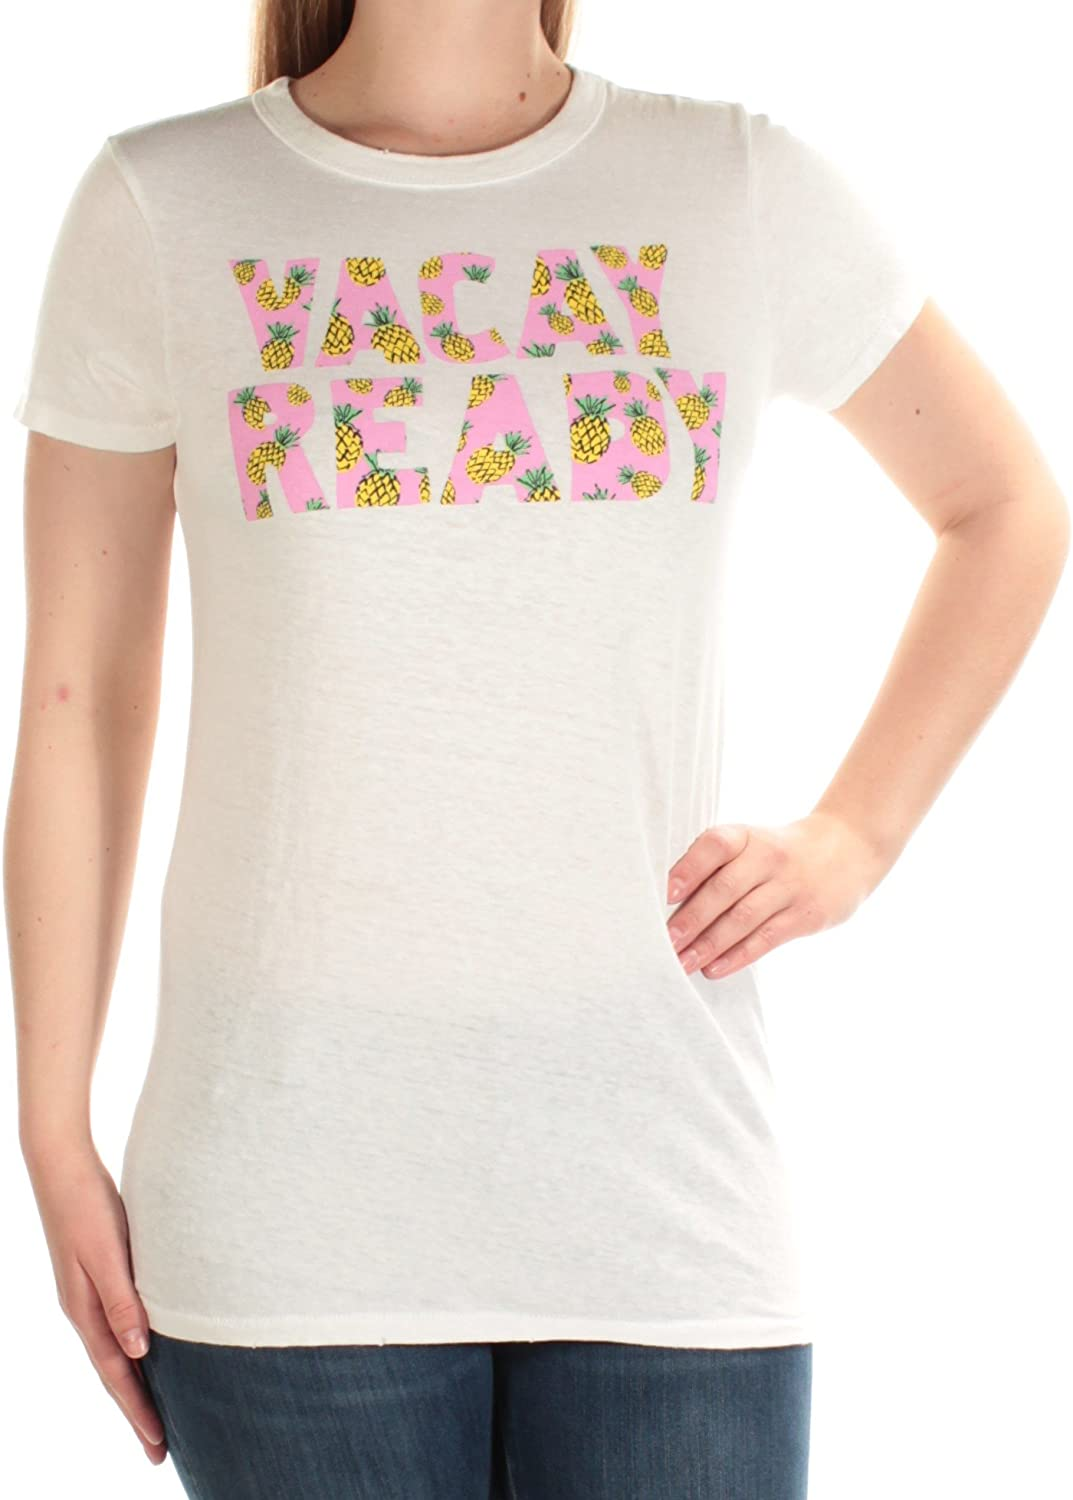 Junk Food Women's Vacay Ready Graphic Short Sleeve Pineapple T-Shirt Aire Off-White